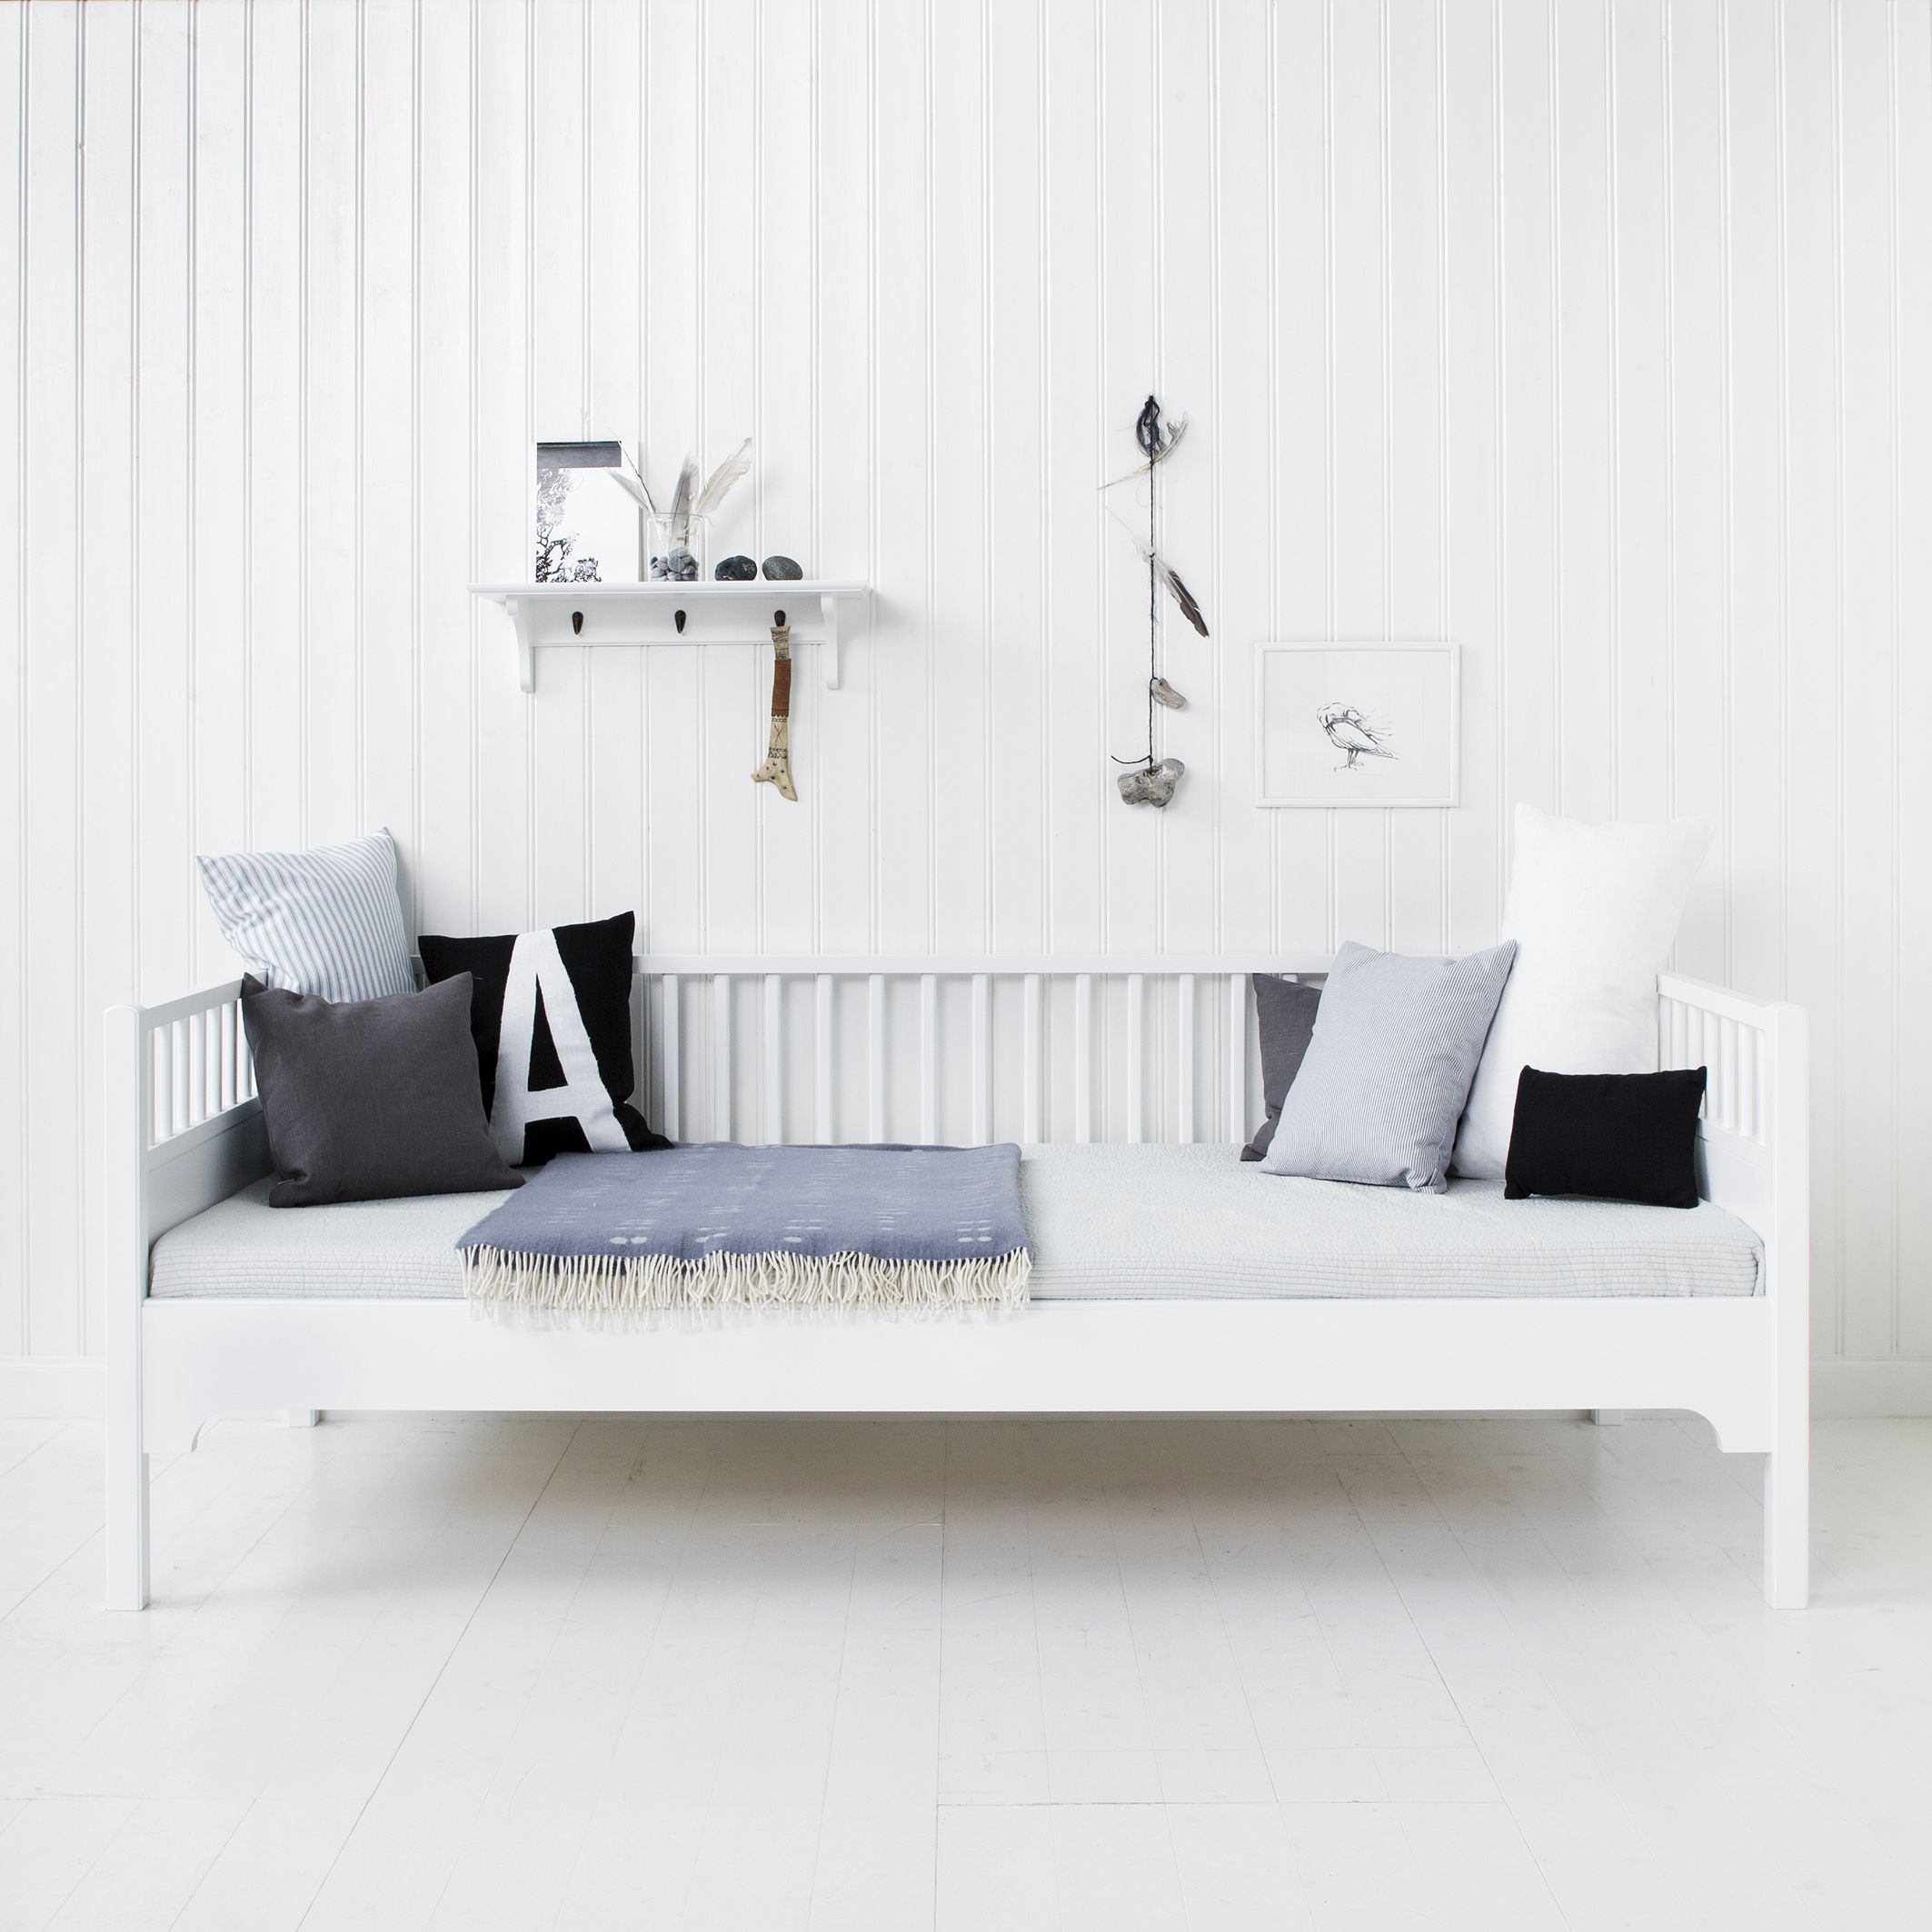 Day bed from Oliver Furniture in Nordic design and style